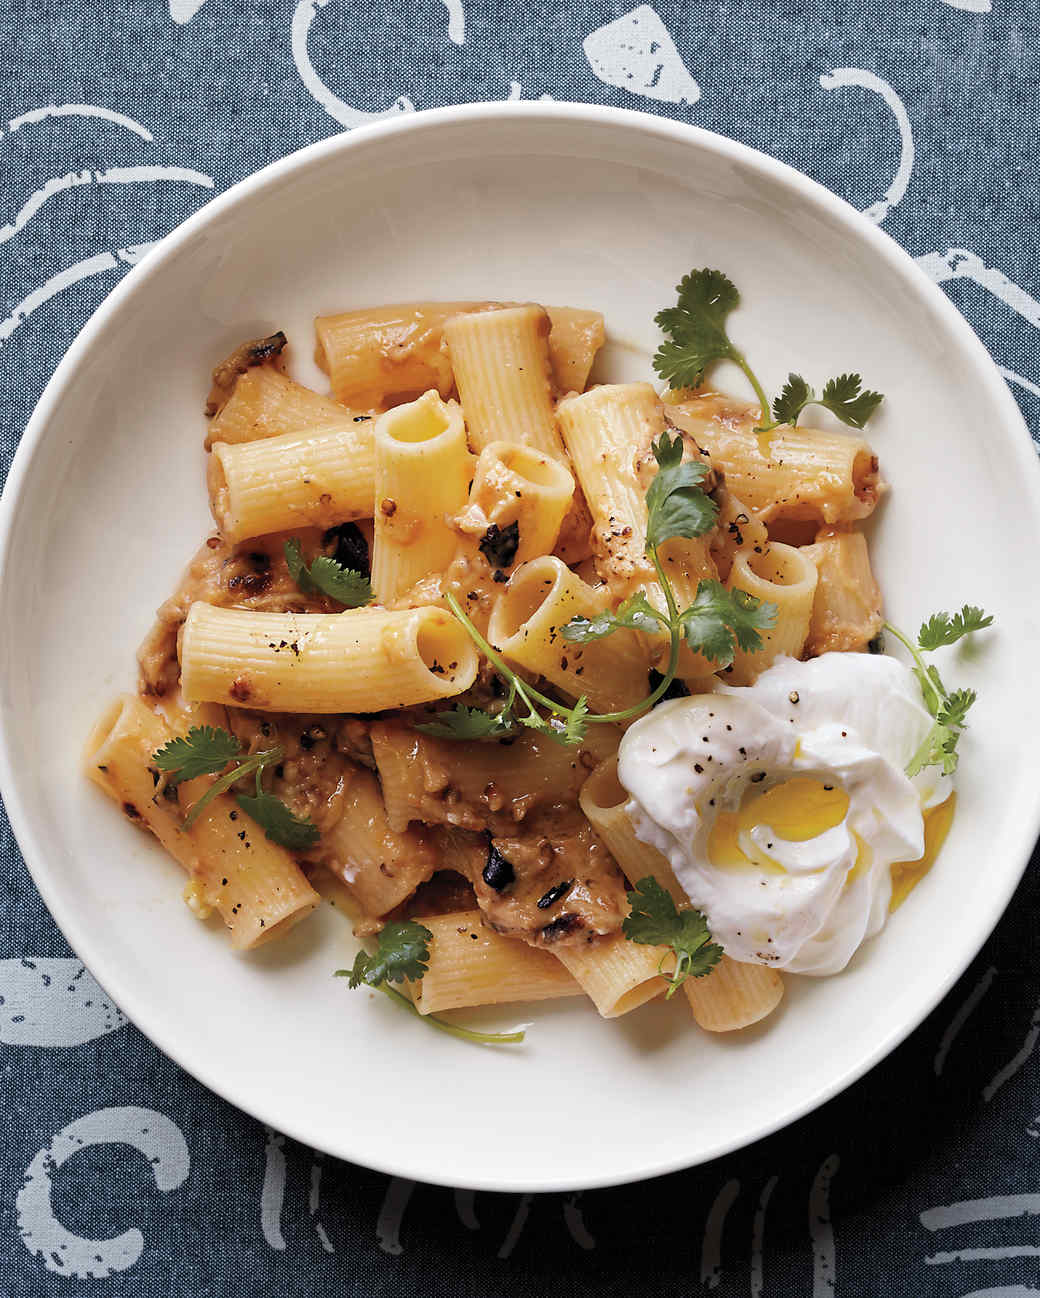 Rigatoni with Eggplant and Yogurt